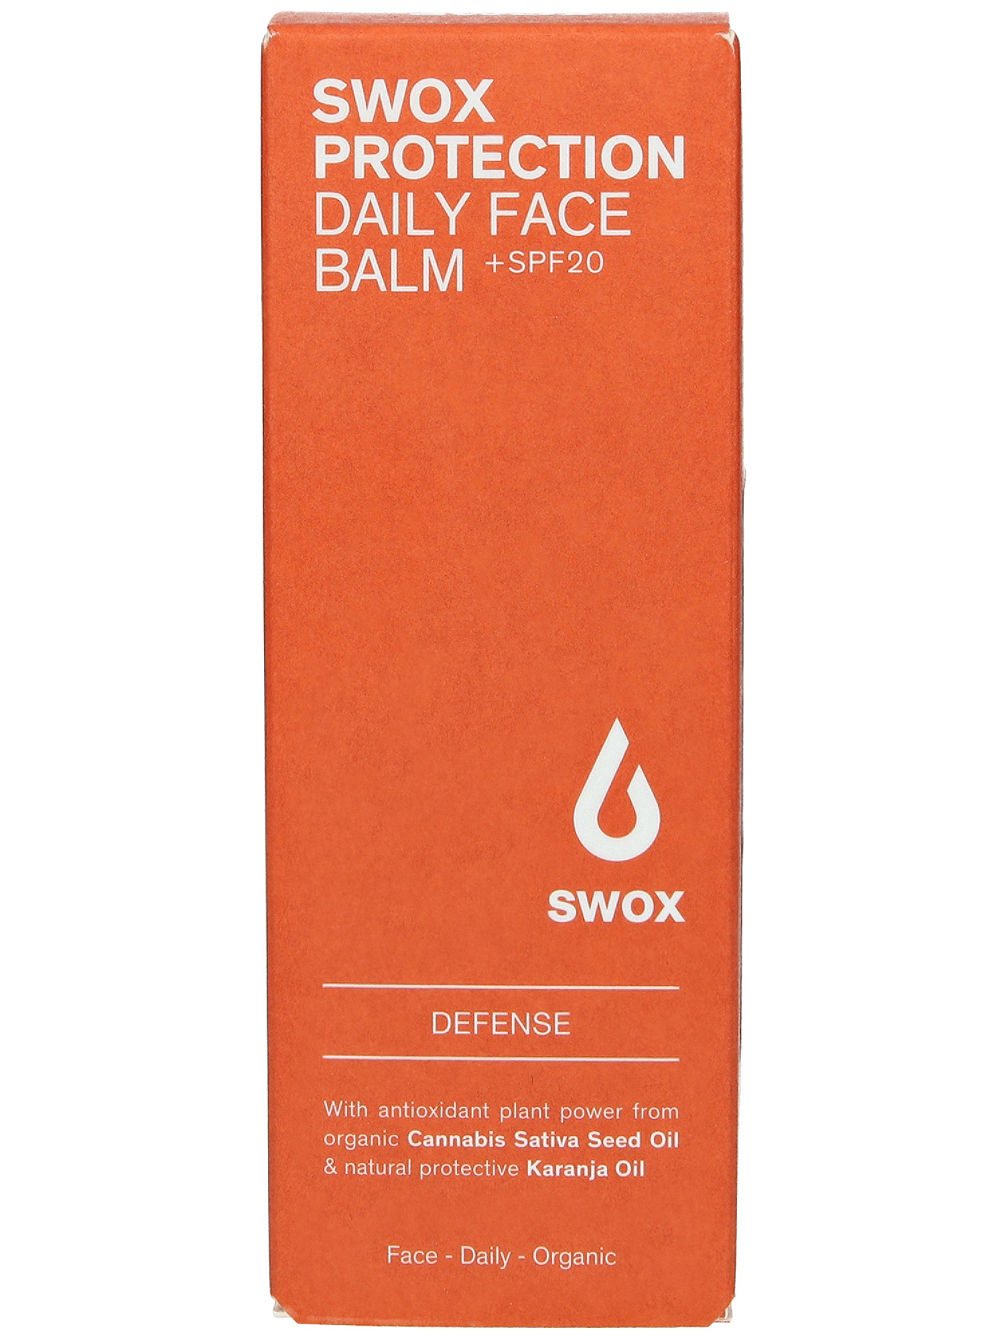 Daily Face Balm Defense SPF 20 50ml